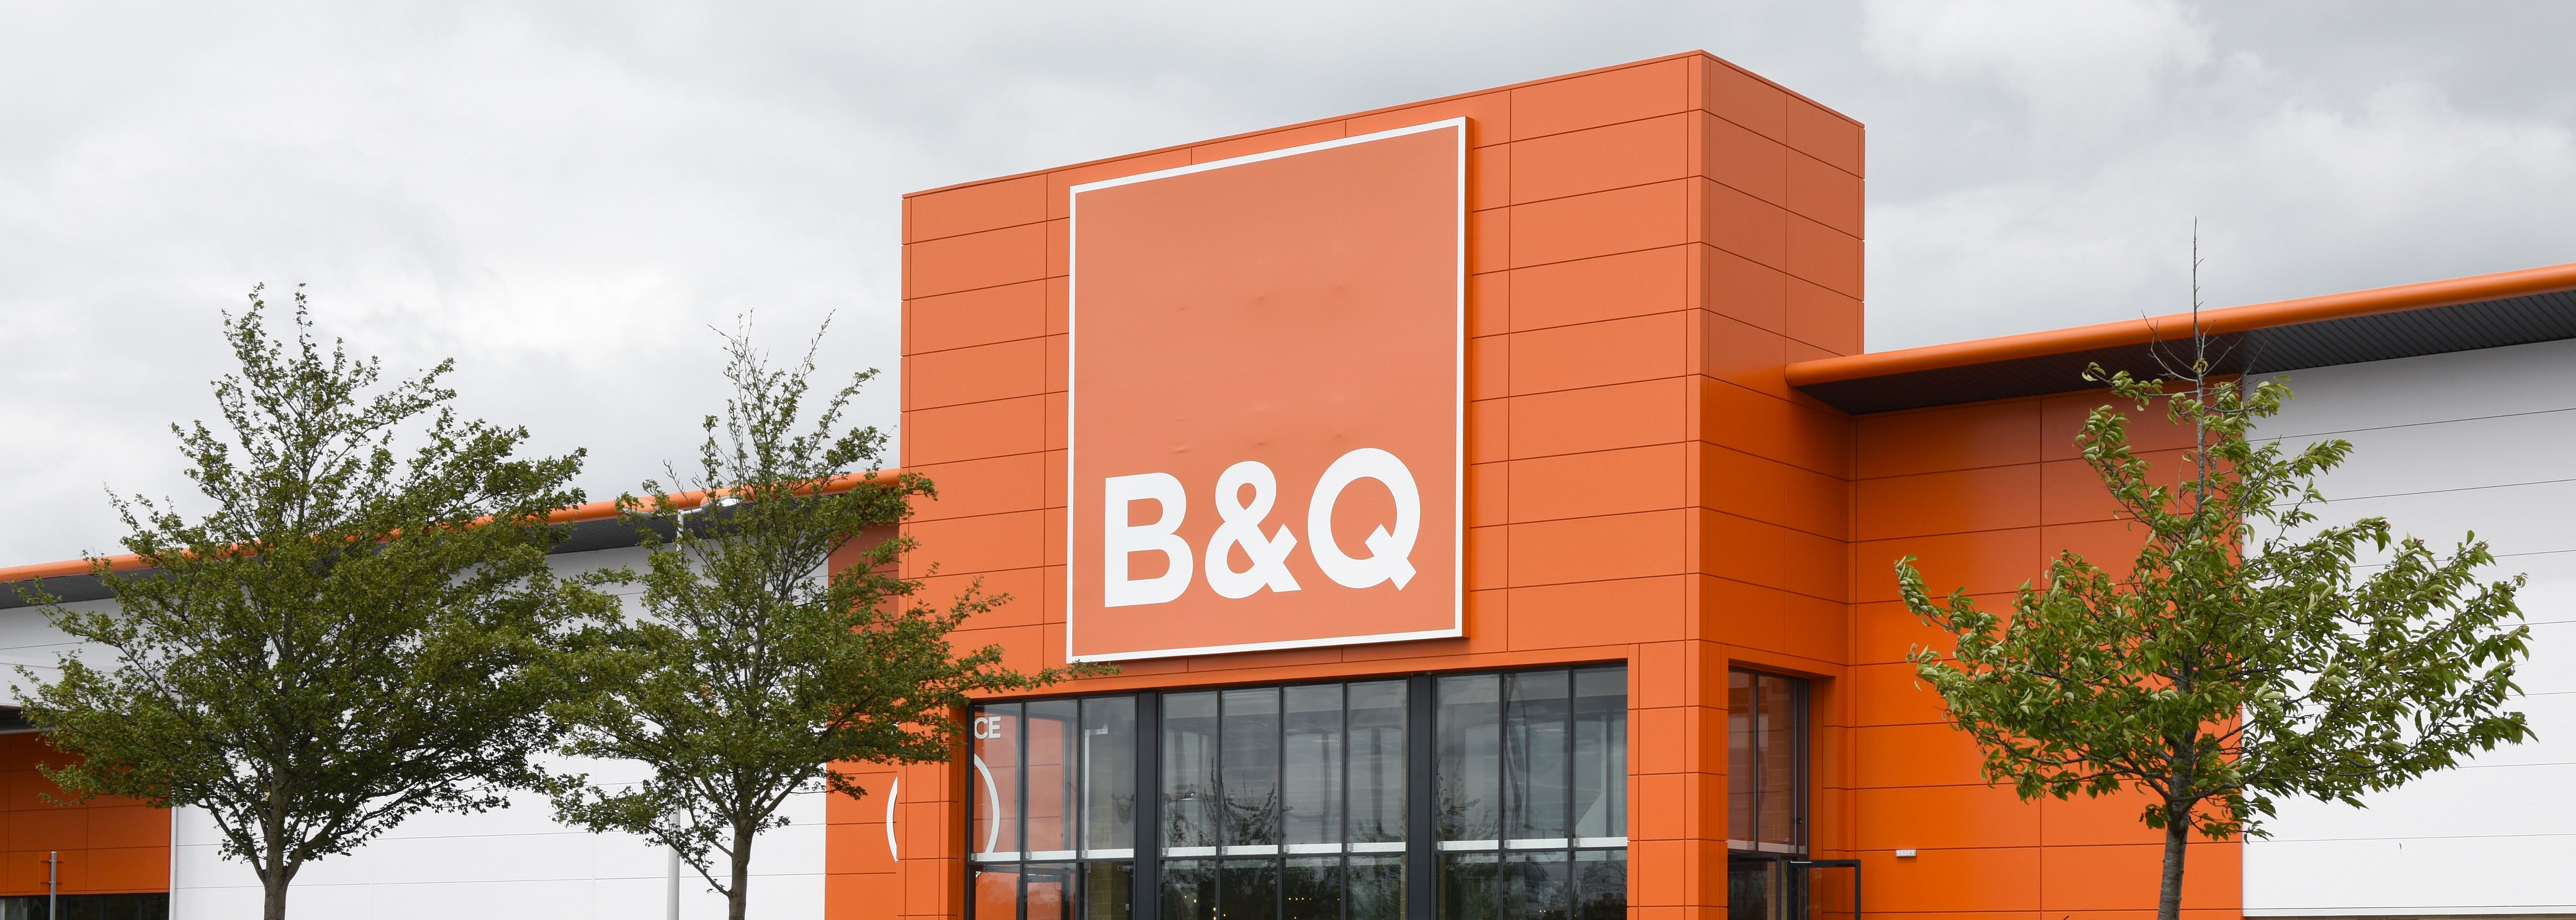 B&q Corporate  Our Stores  Diy At B&q. Pictures Of Glass Tile Backsplash In Kitchen. Free Standing Kitchen Furniture. Rustic Kitchens Ideas. Kitchen Aid Double Ovens. Ginsu Kitchen Knives. Kitchen Renovation Tips. Kitchen Bistro St James. Recipes By Ingredients In My Kitchen